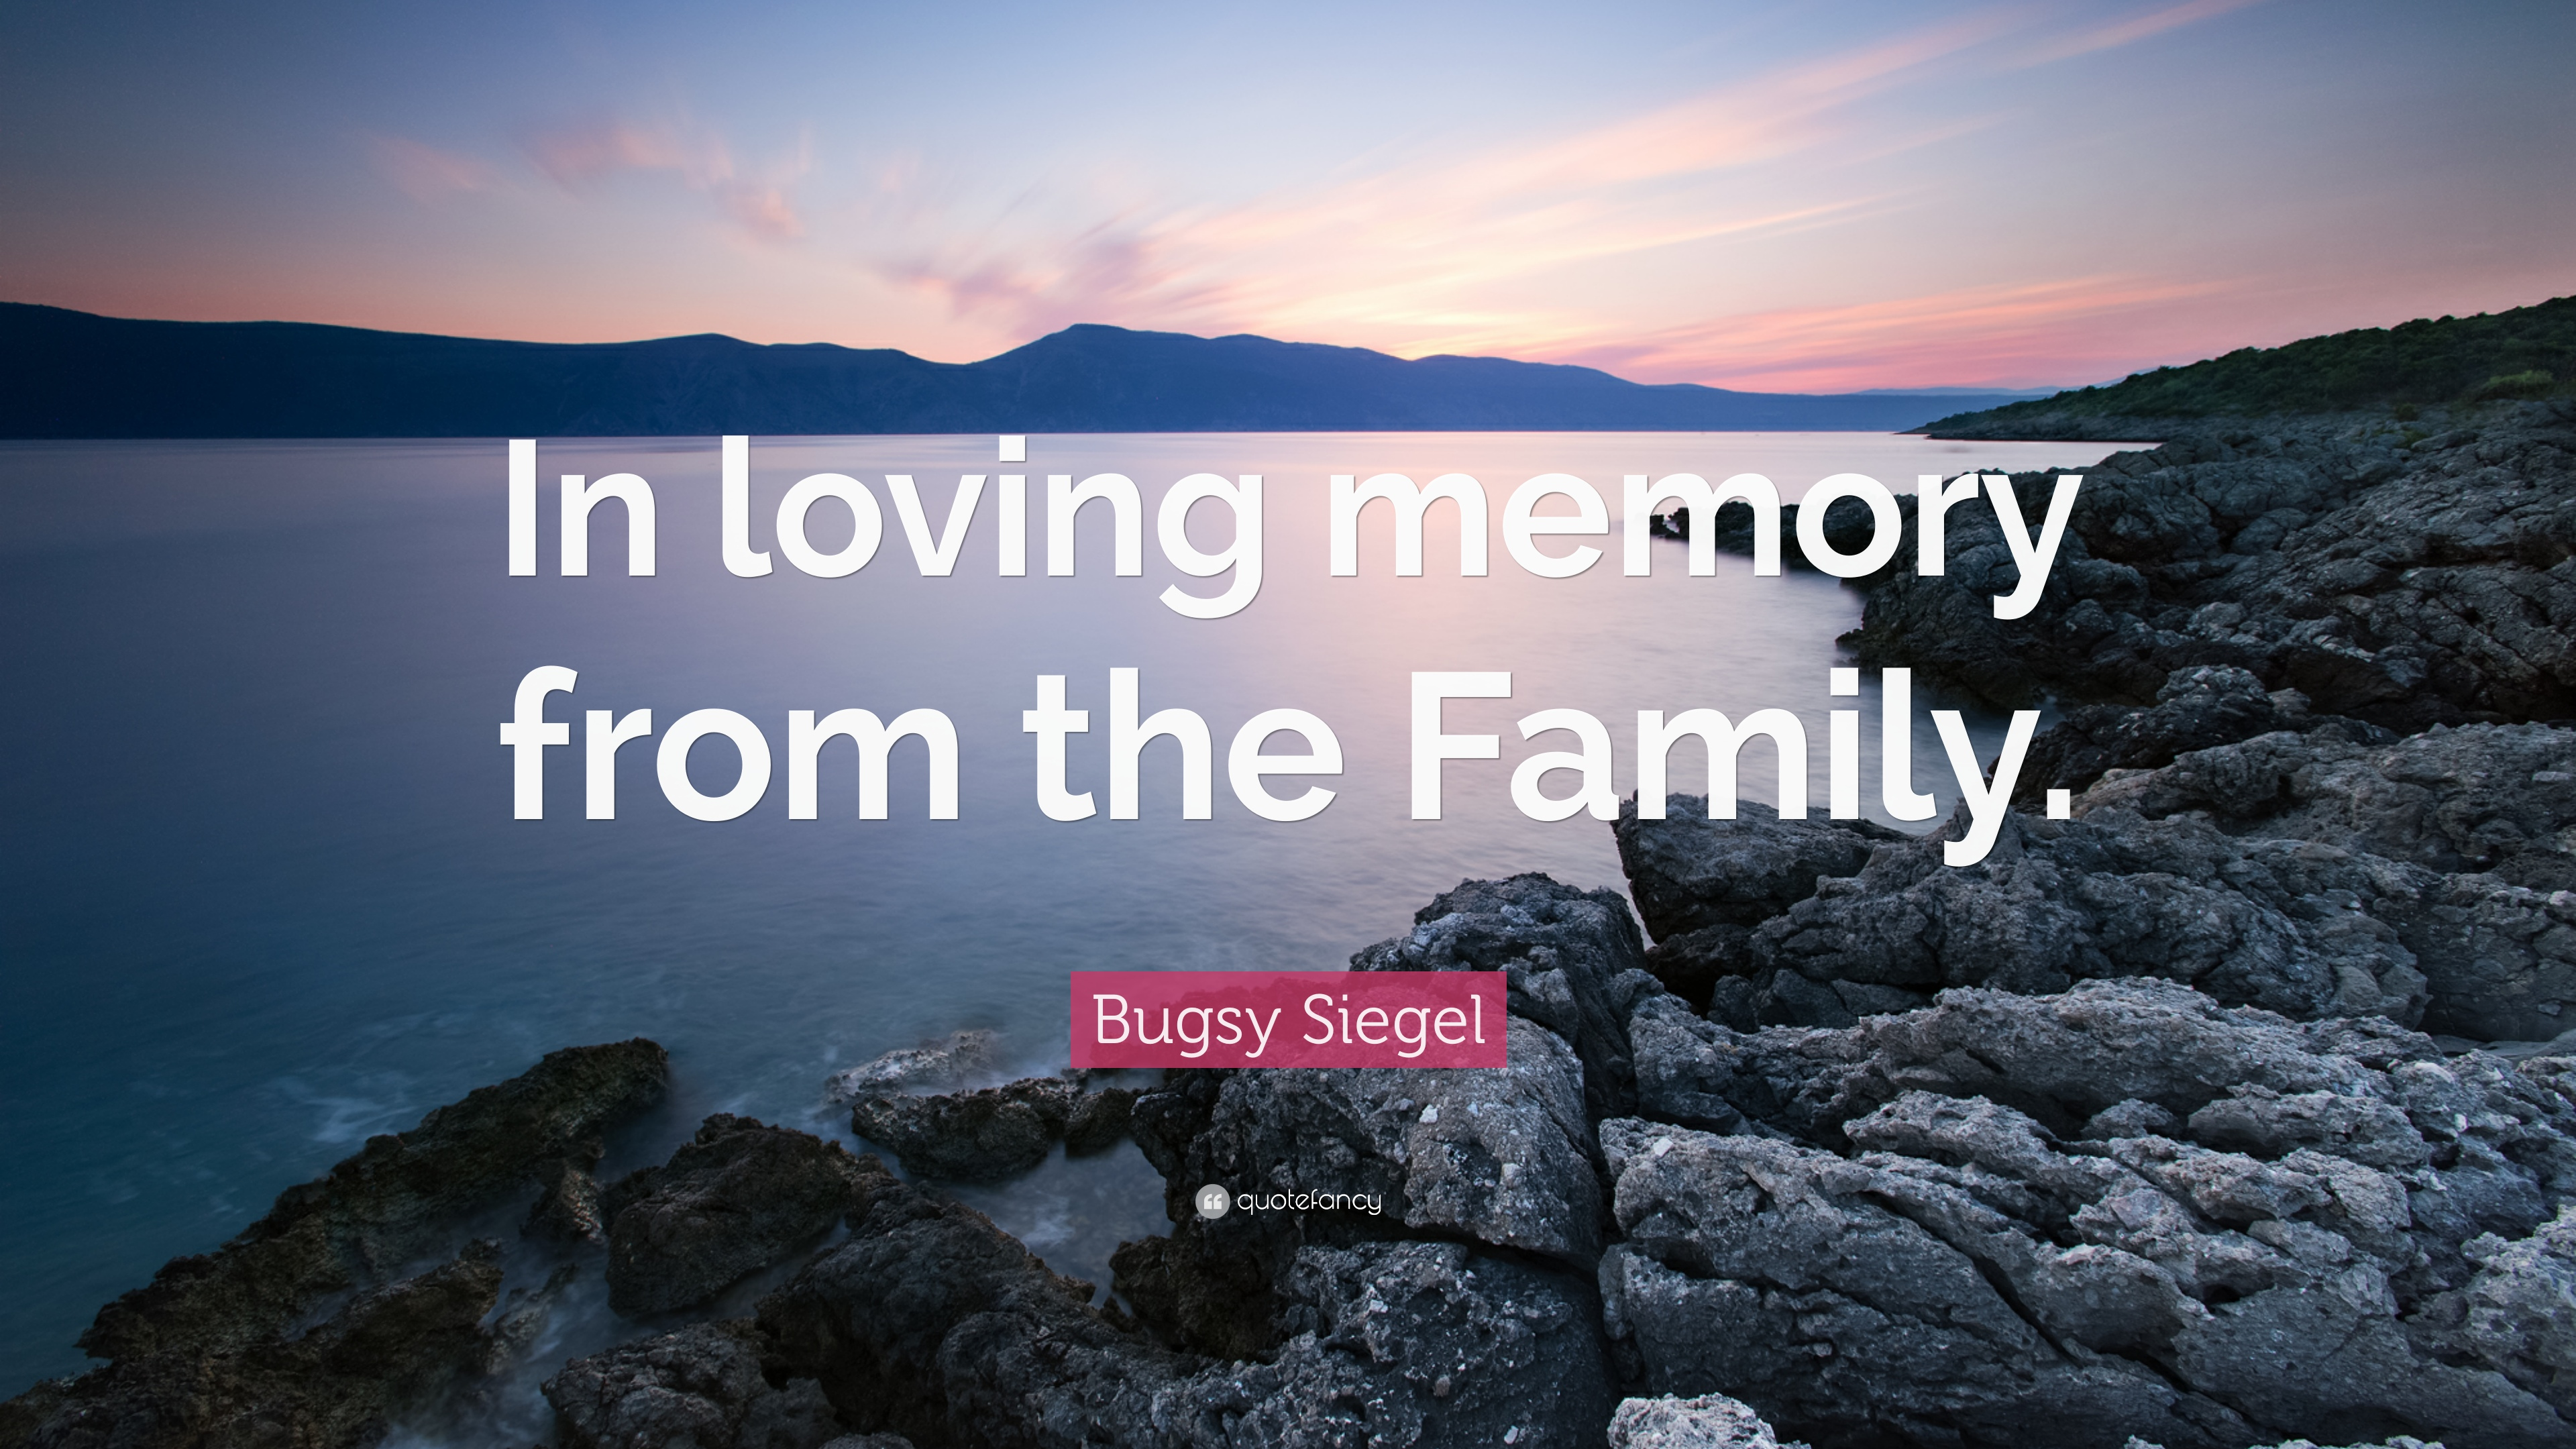 In Loving Memory Quotes Bugsy Siegel Quotes 3 Wallpapers  Quotefancy